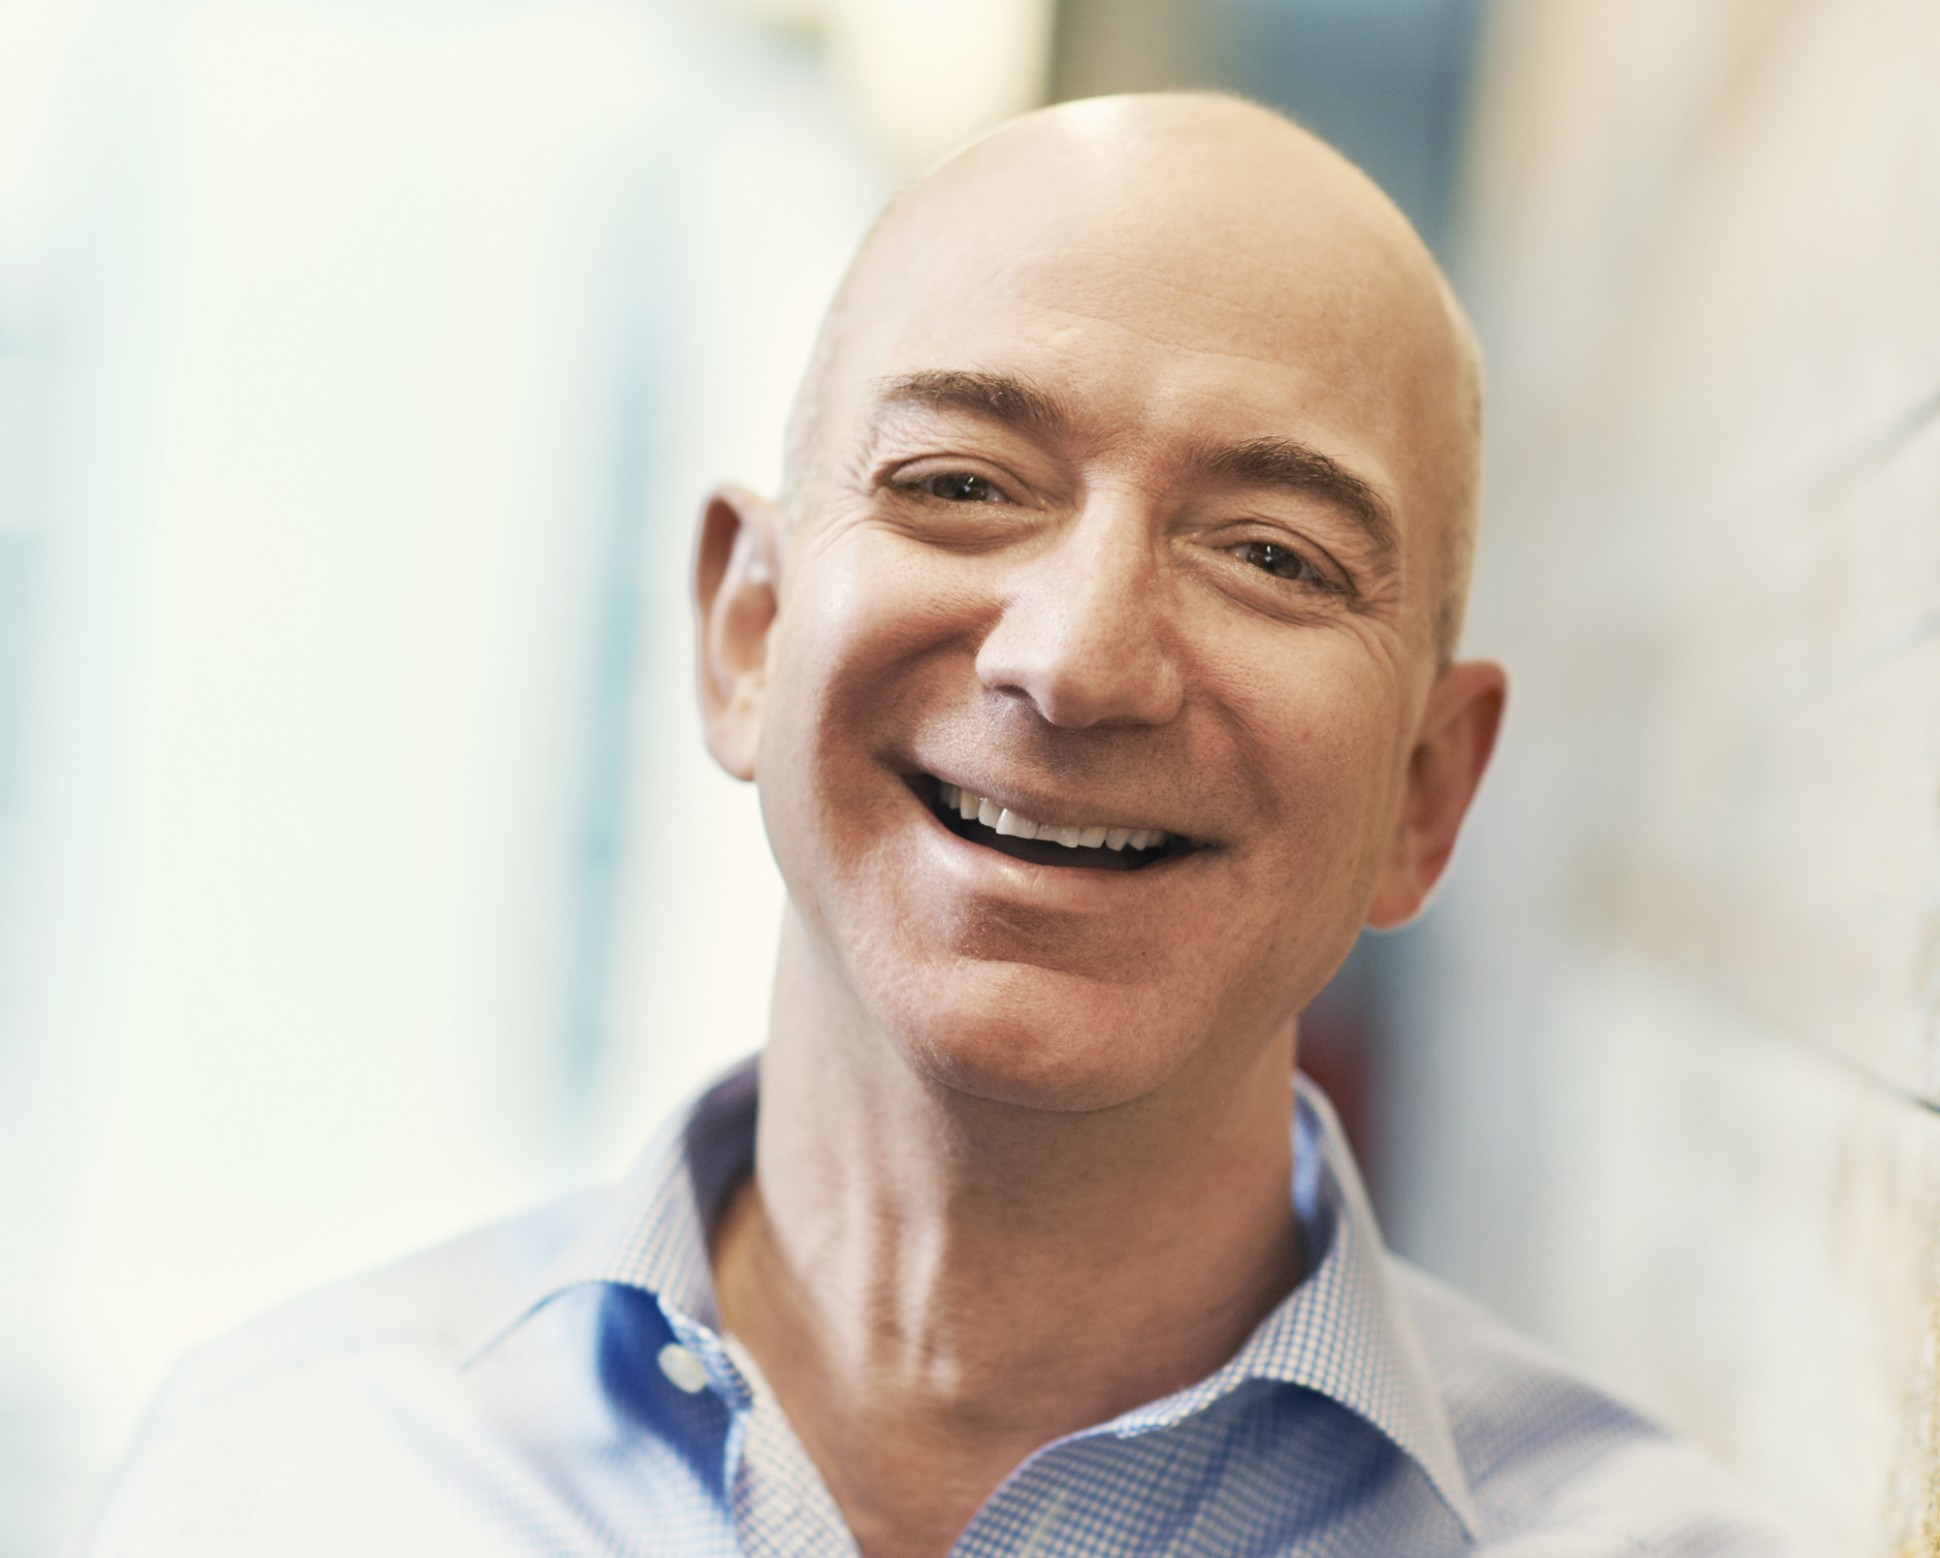 American entrepreneur Jeff Bezos is the founder and chief executive officer of Amazoncom and owner of The Washington Post In 2017 he became the